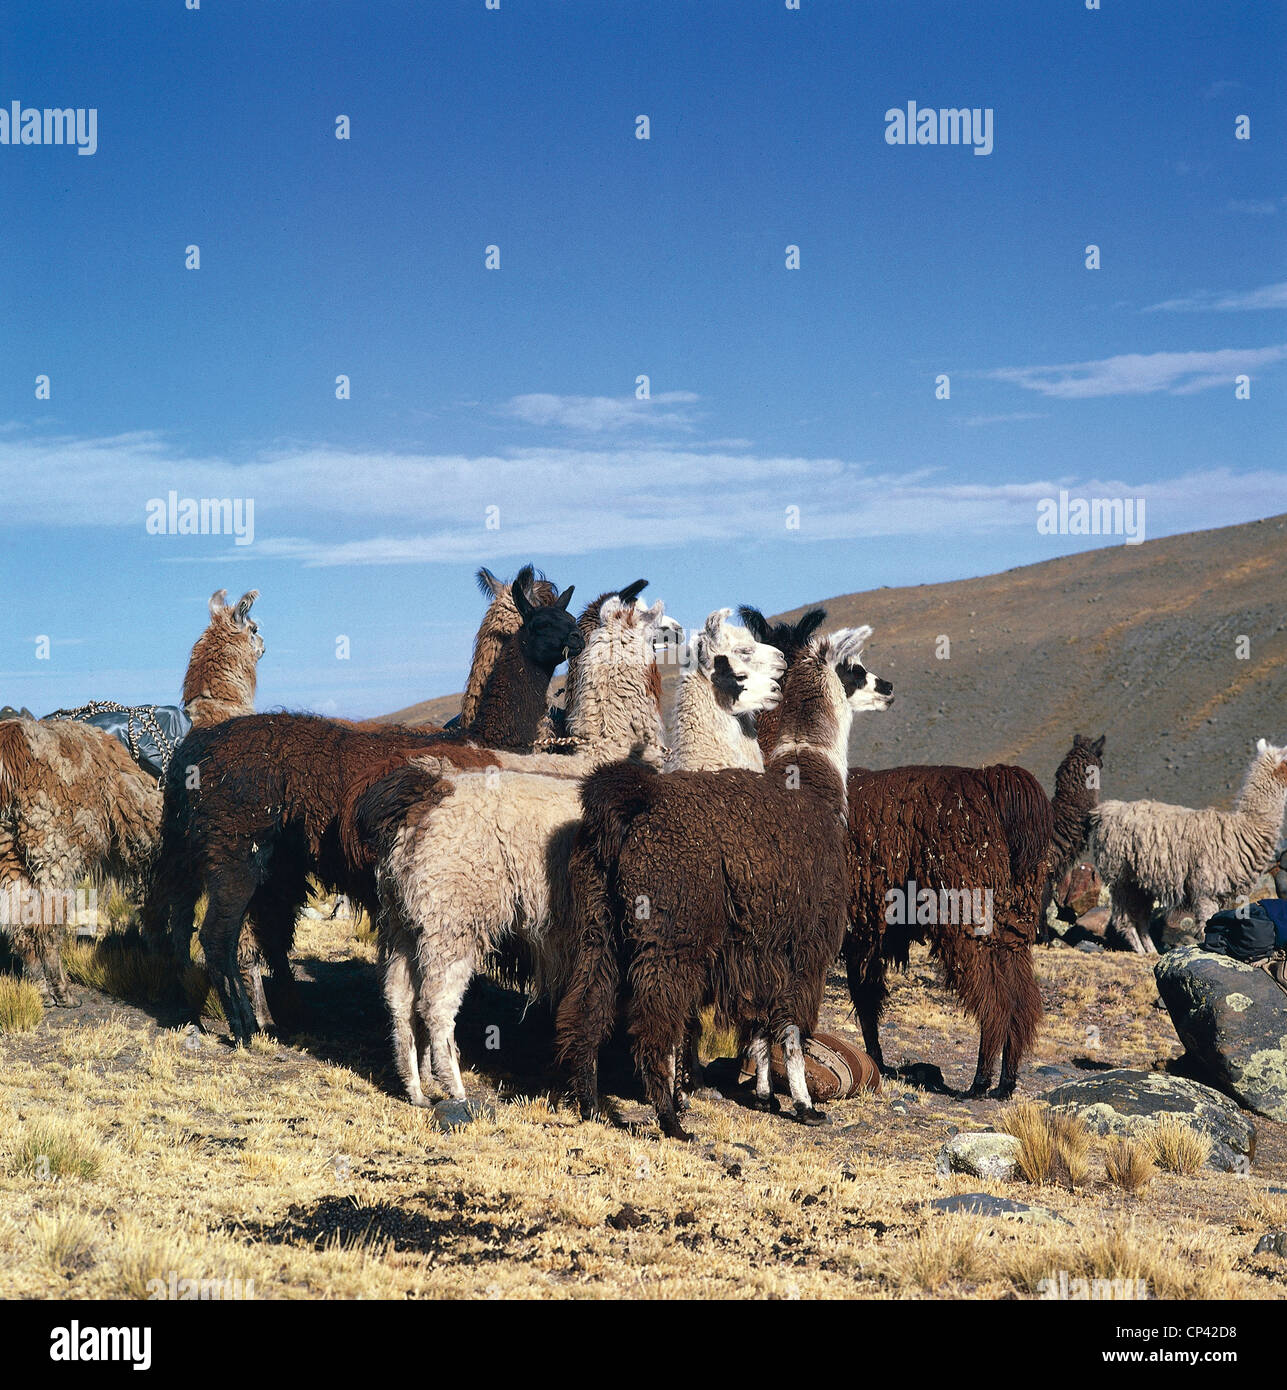 Bolivia - Camels - grazing Lama (Lama glama). Stock Photo